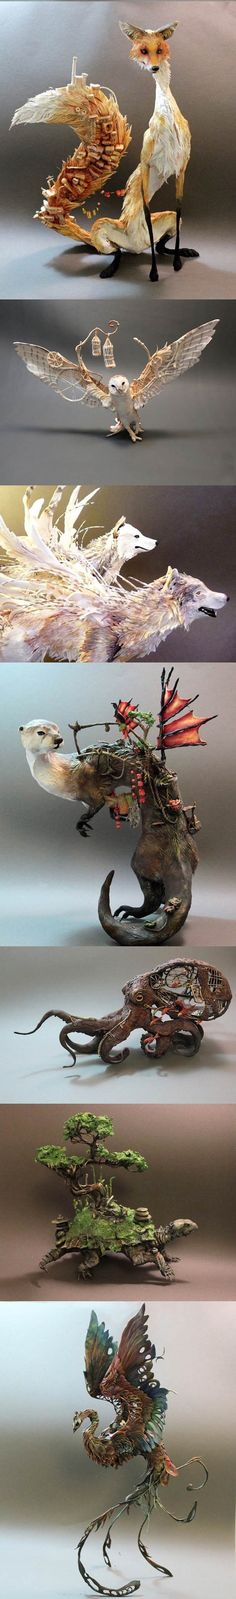 Animal sculptures. These are super creative.